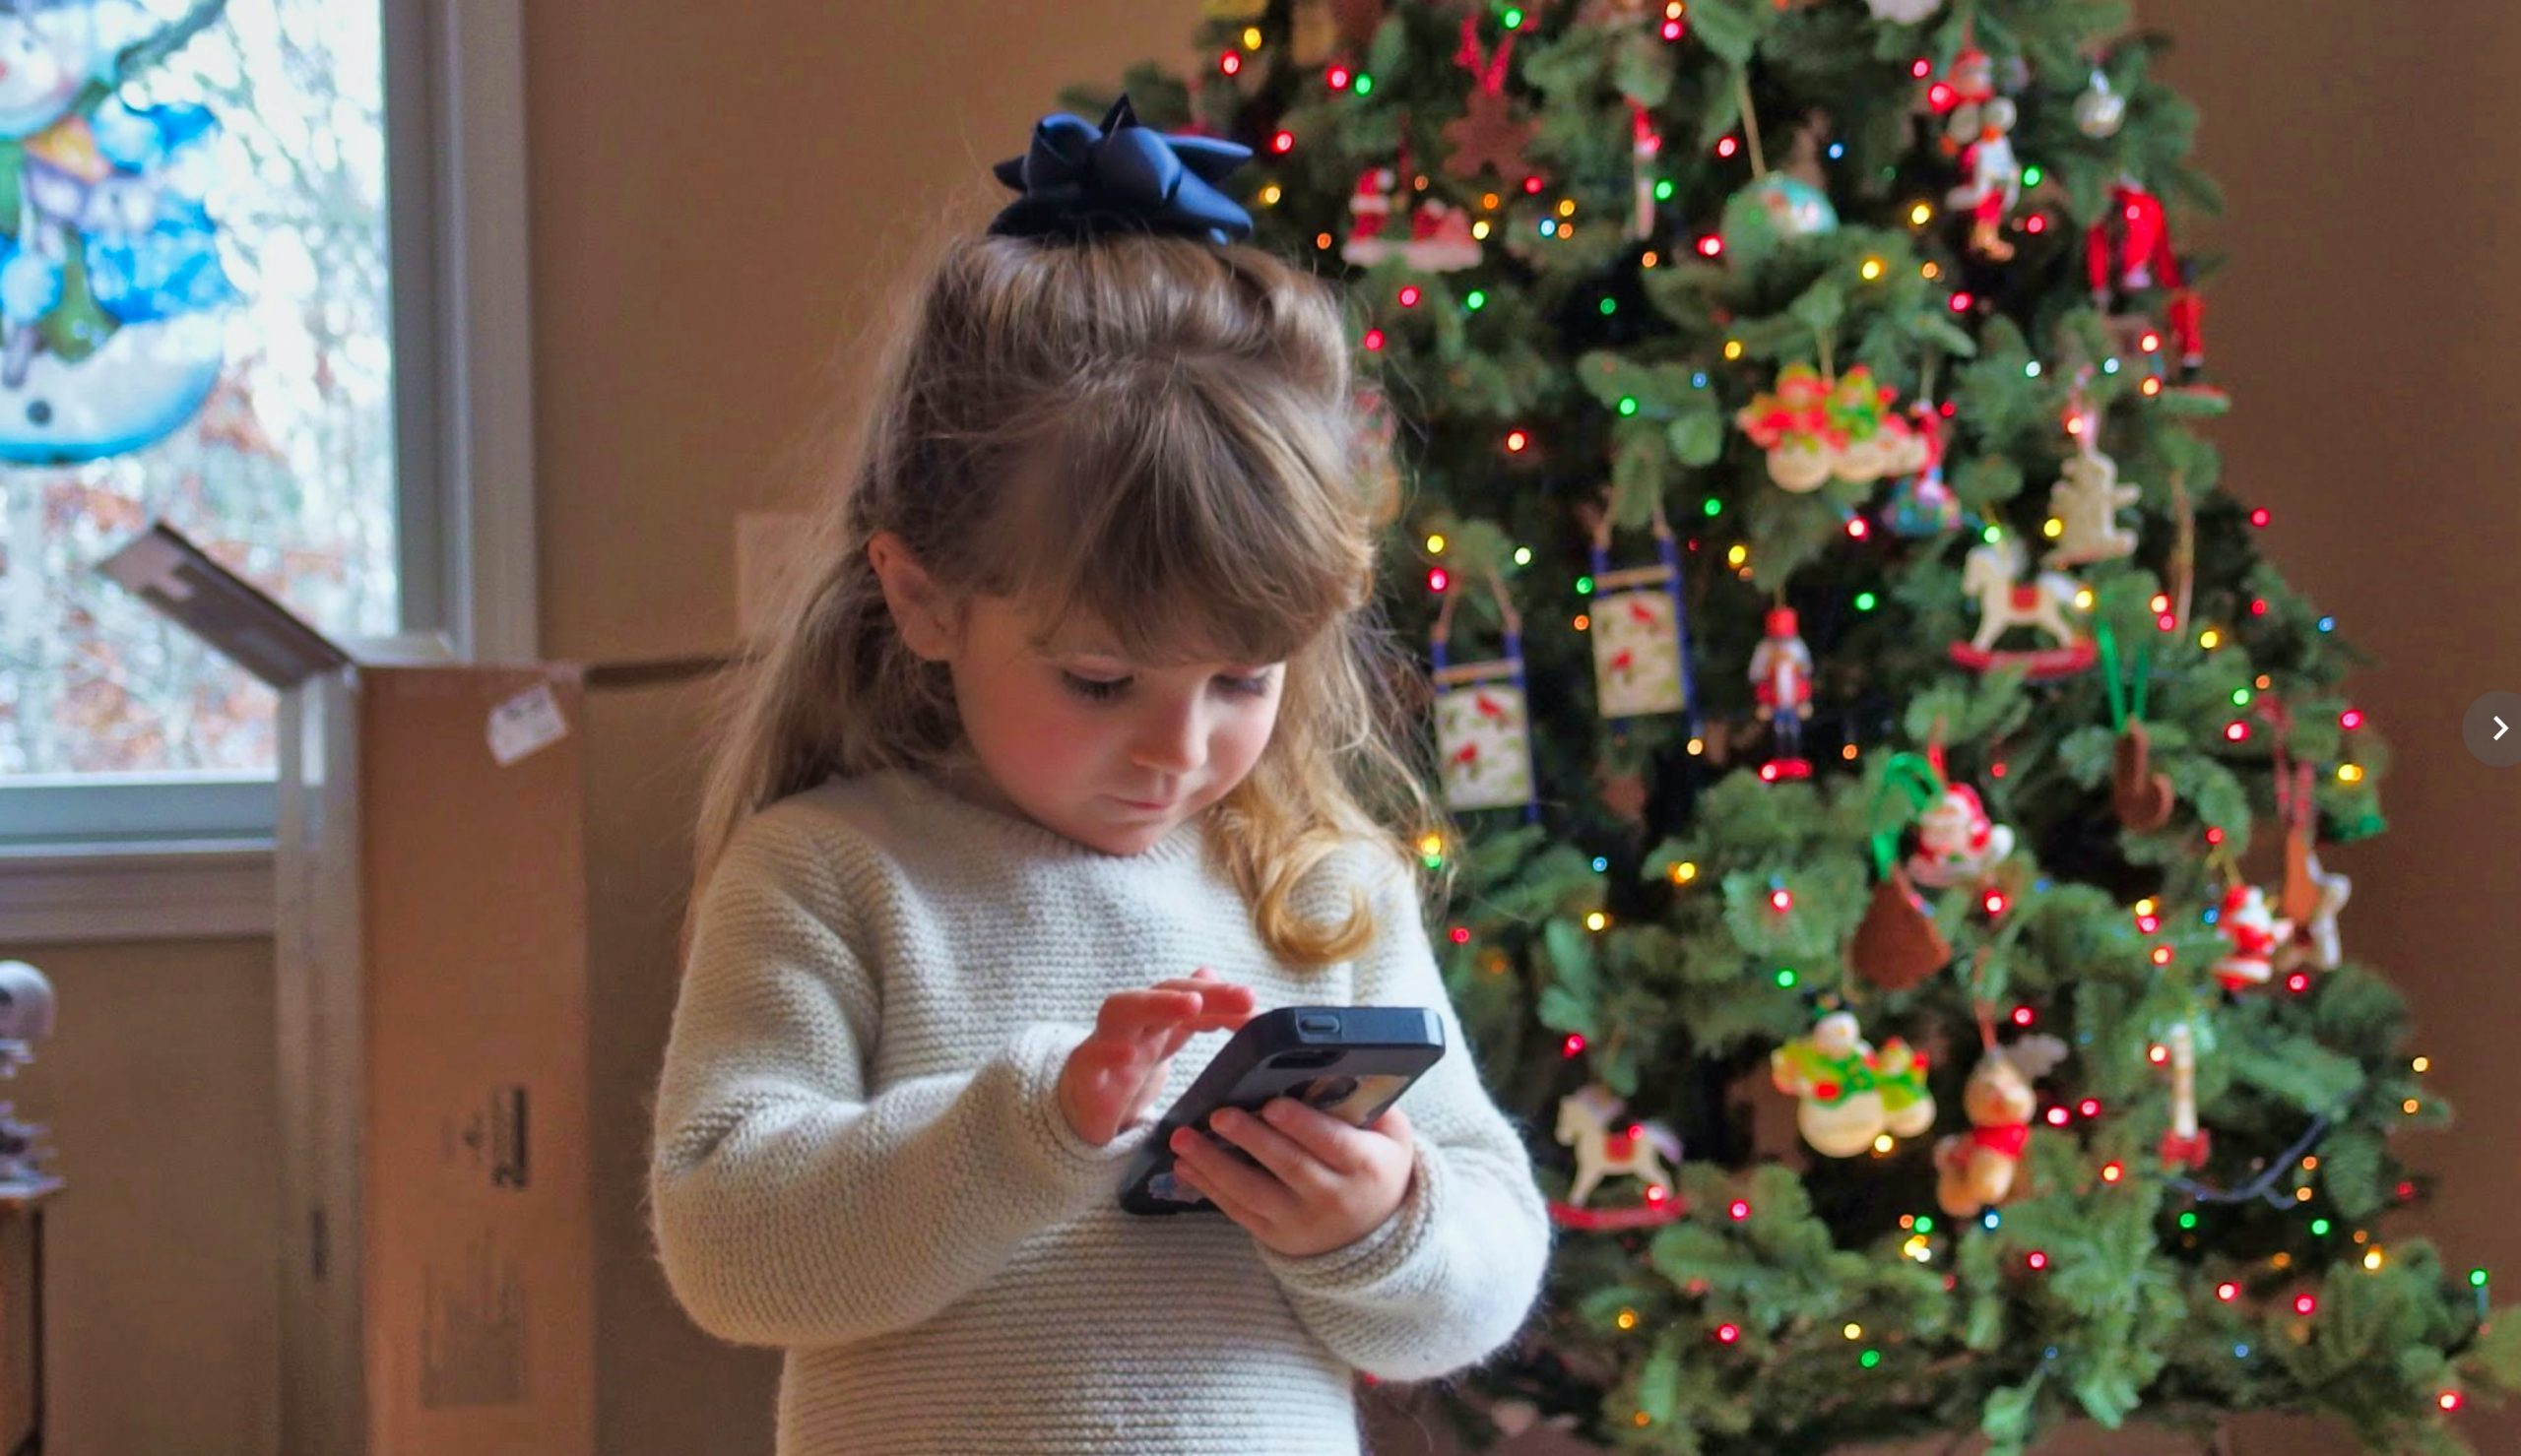 Child with iPhone at Christmas